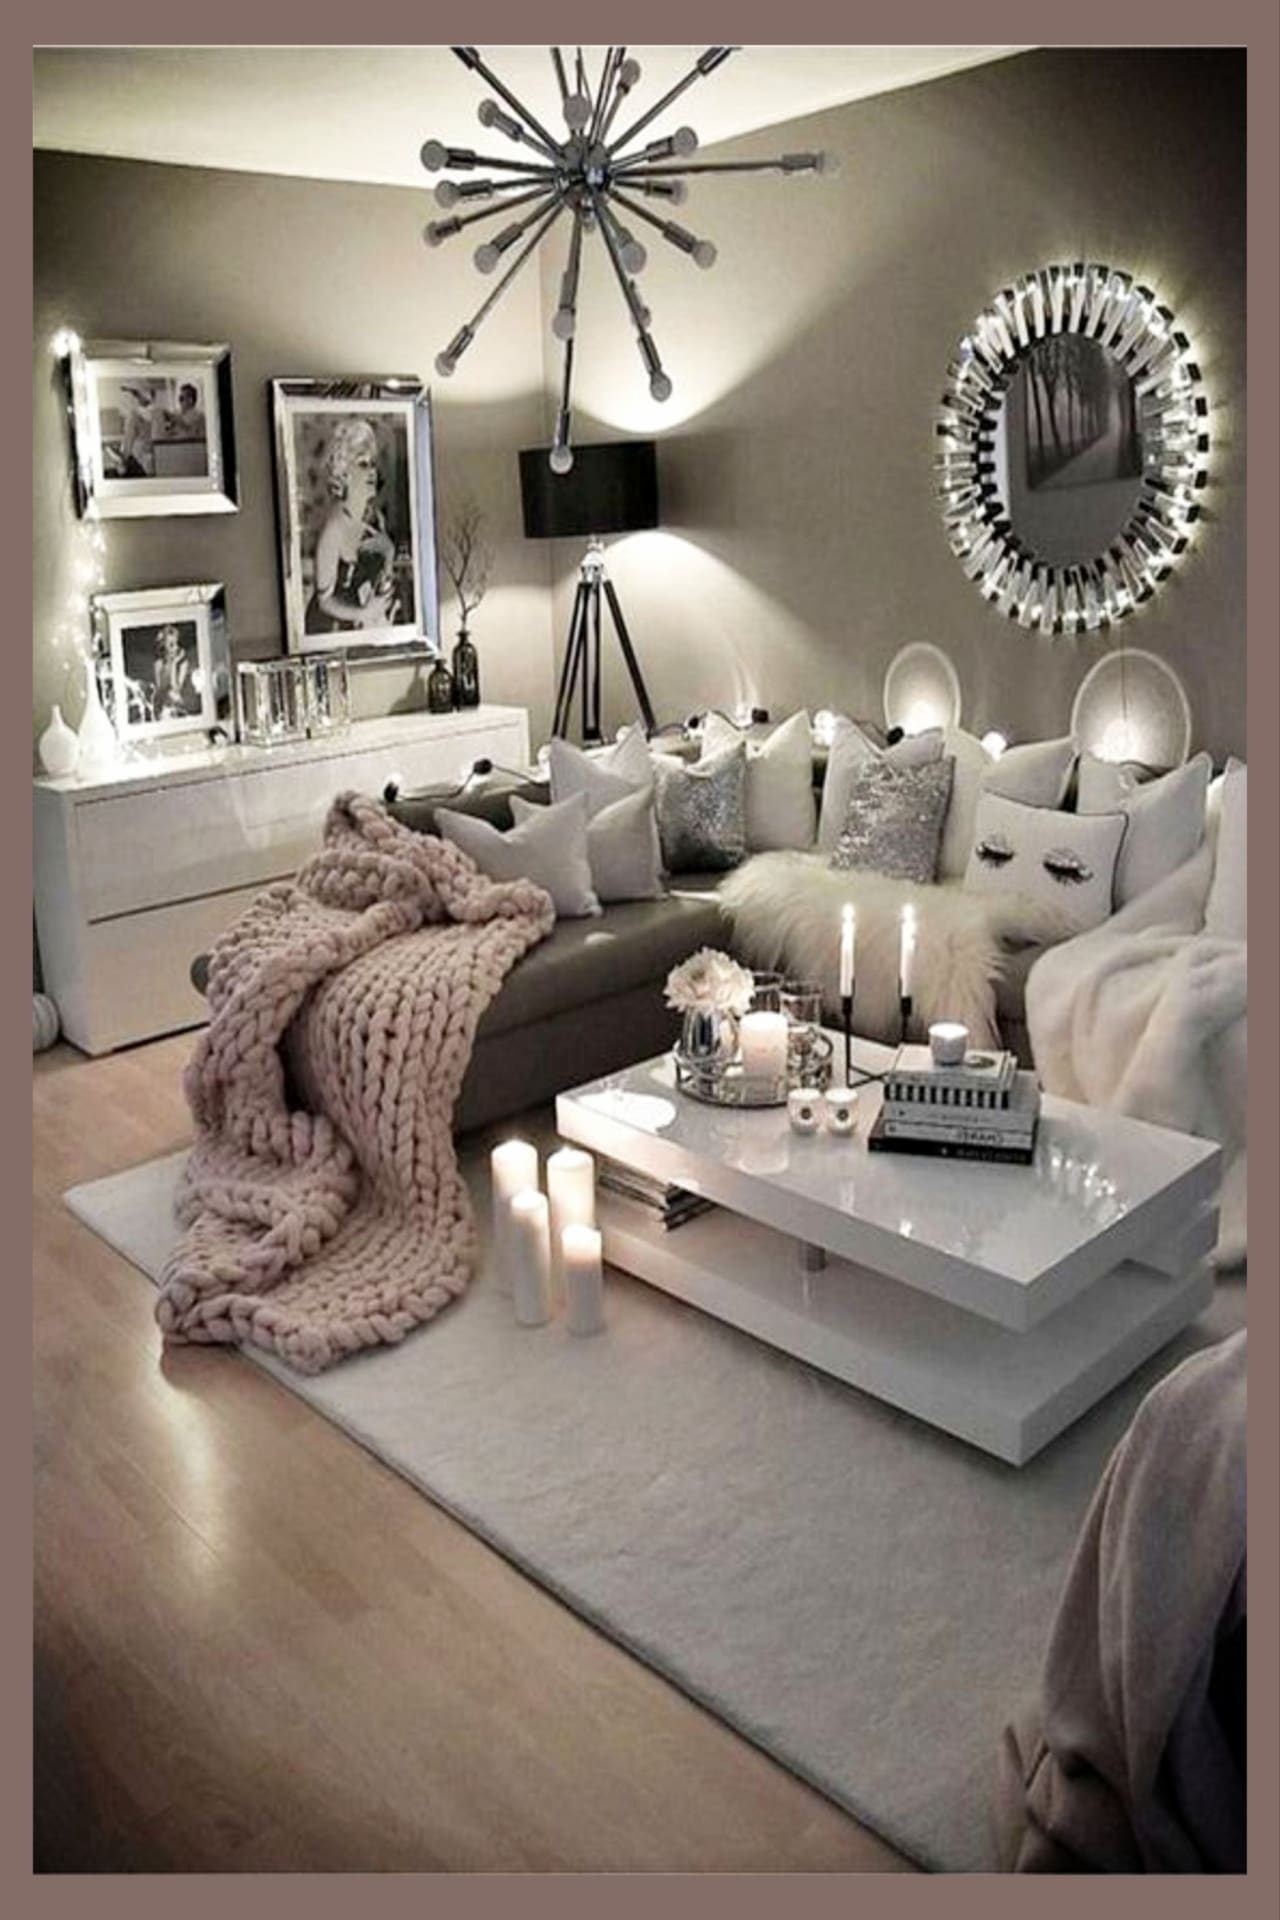 Today 2020 10 31 Surprising Neutral Living Room Decorating Ideas Best Ideas For Us